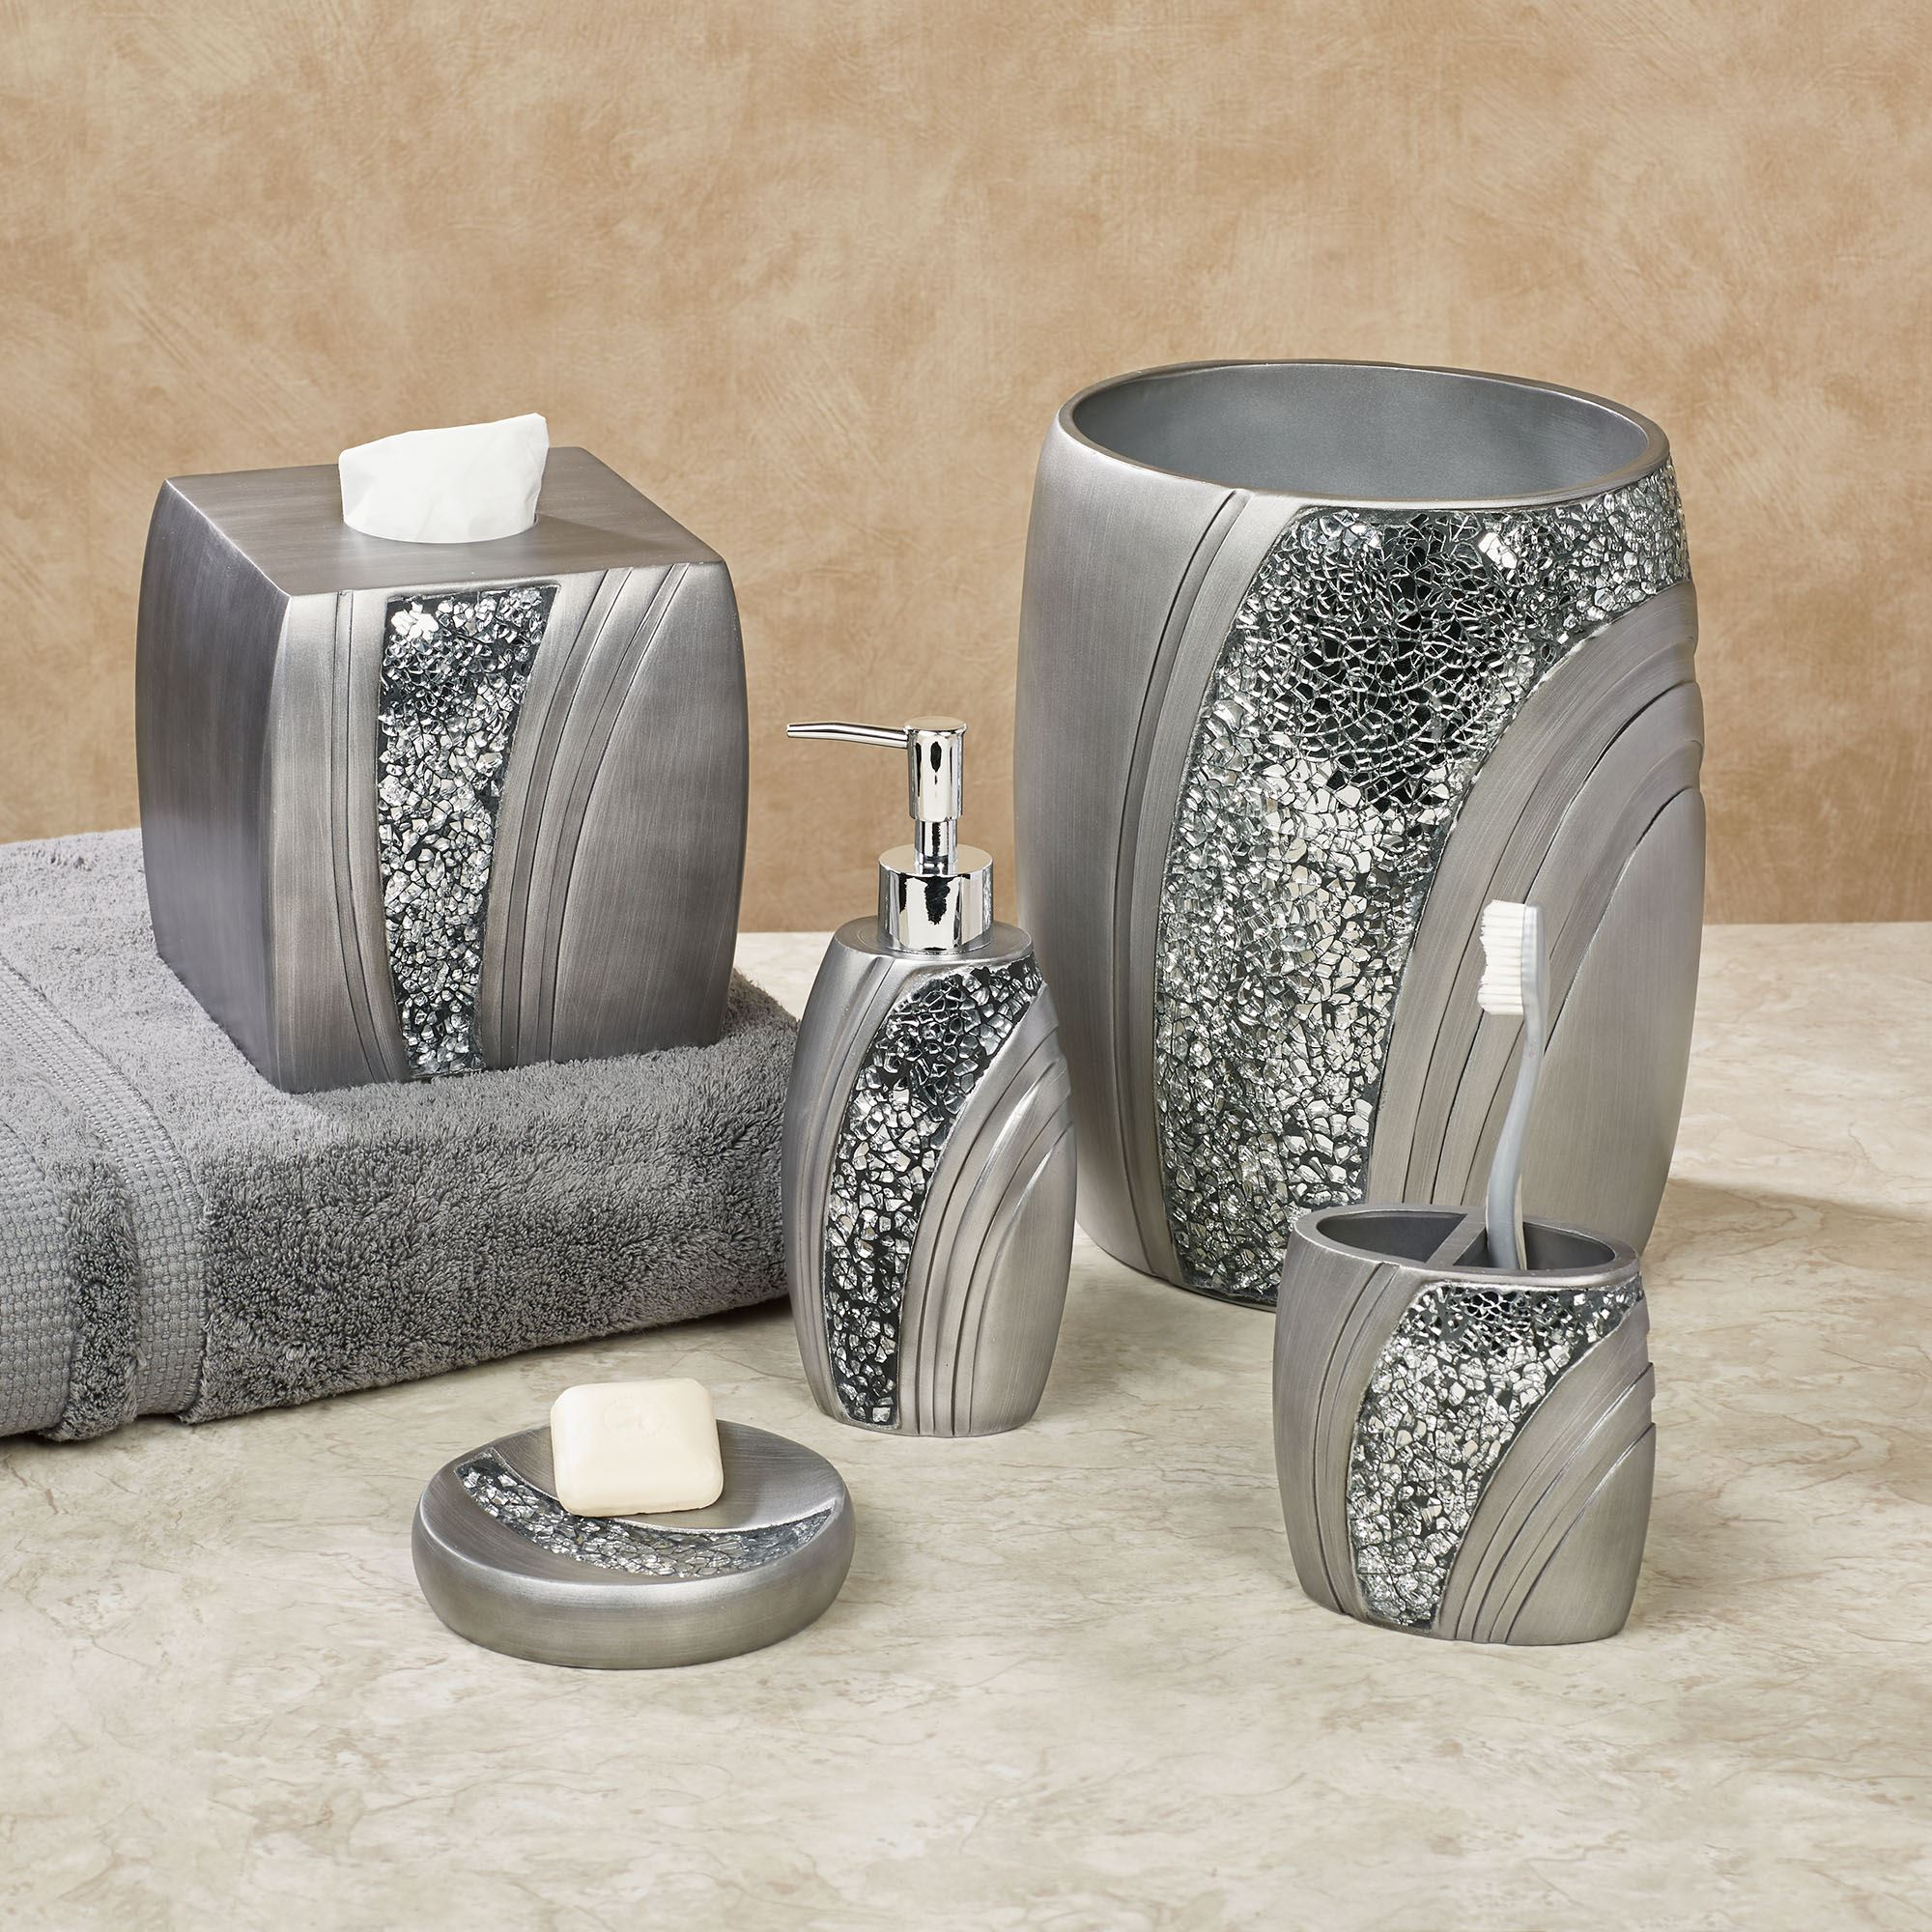 Brilliance mosaic silver gray bath accessories for Mosaic bath accessories